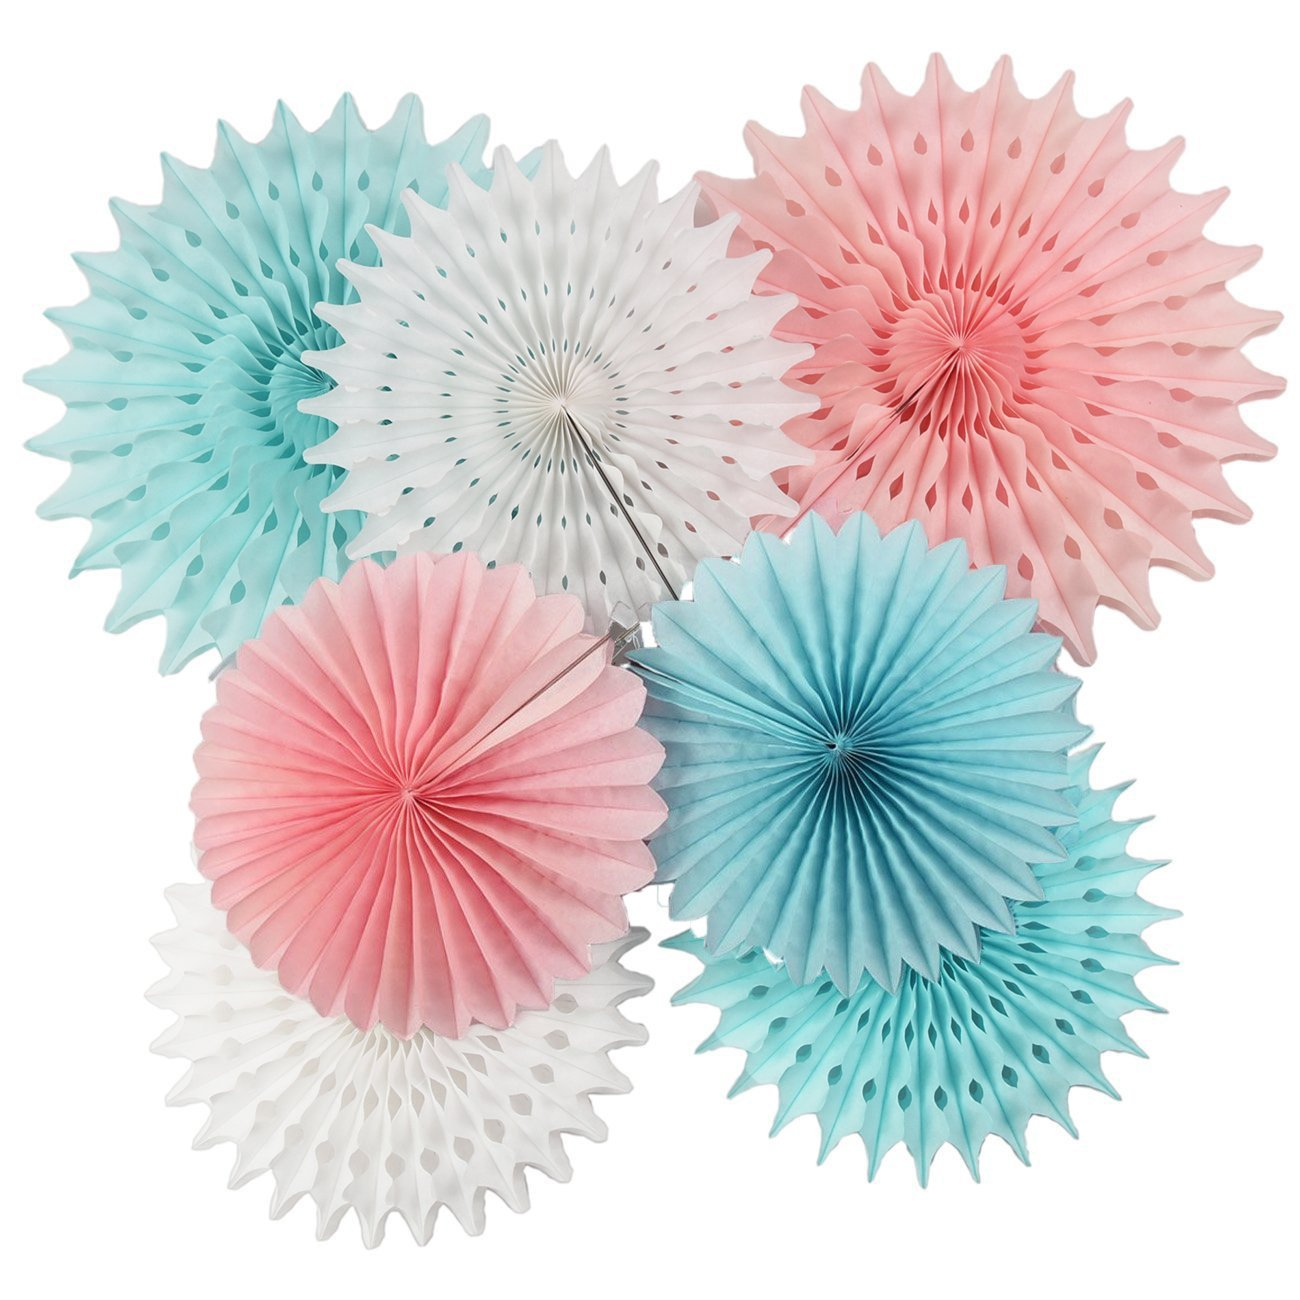 He or She Gender Reveal Party Supplies Pink Blue Tissue Paper Fans/ Tissue Paper Pom Pom Flower Pink Blue Boy or Girl Baby Sex Reveal Party Decor by Qian's Party